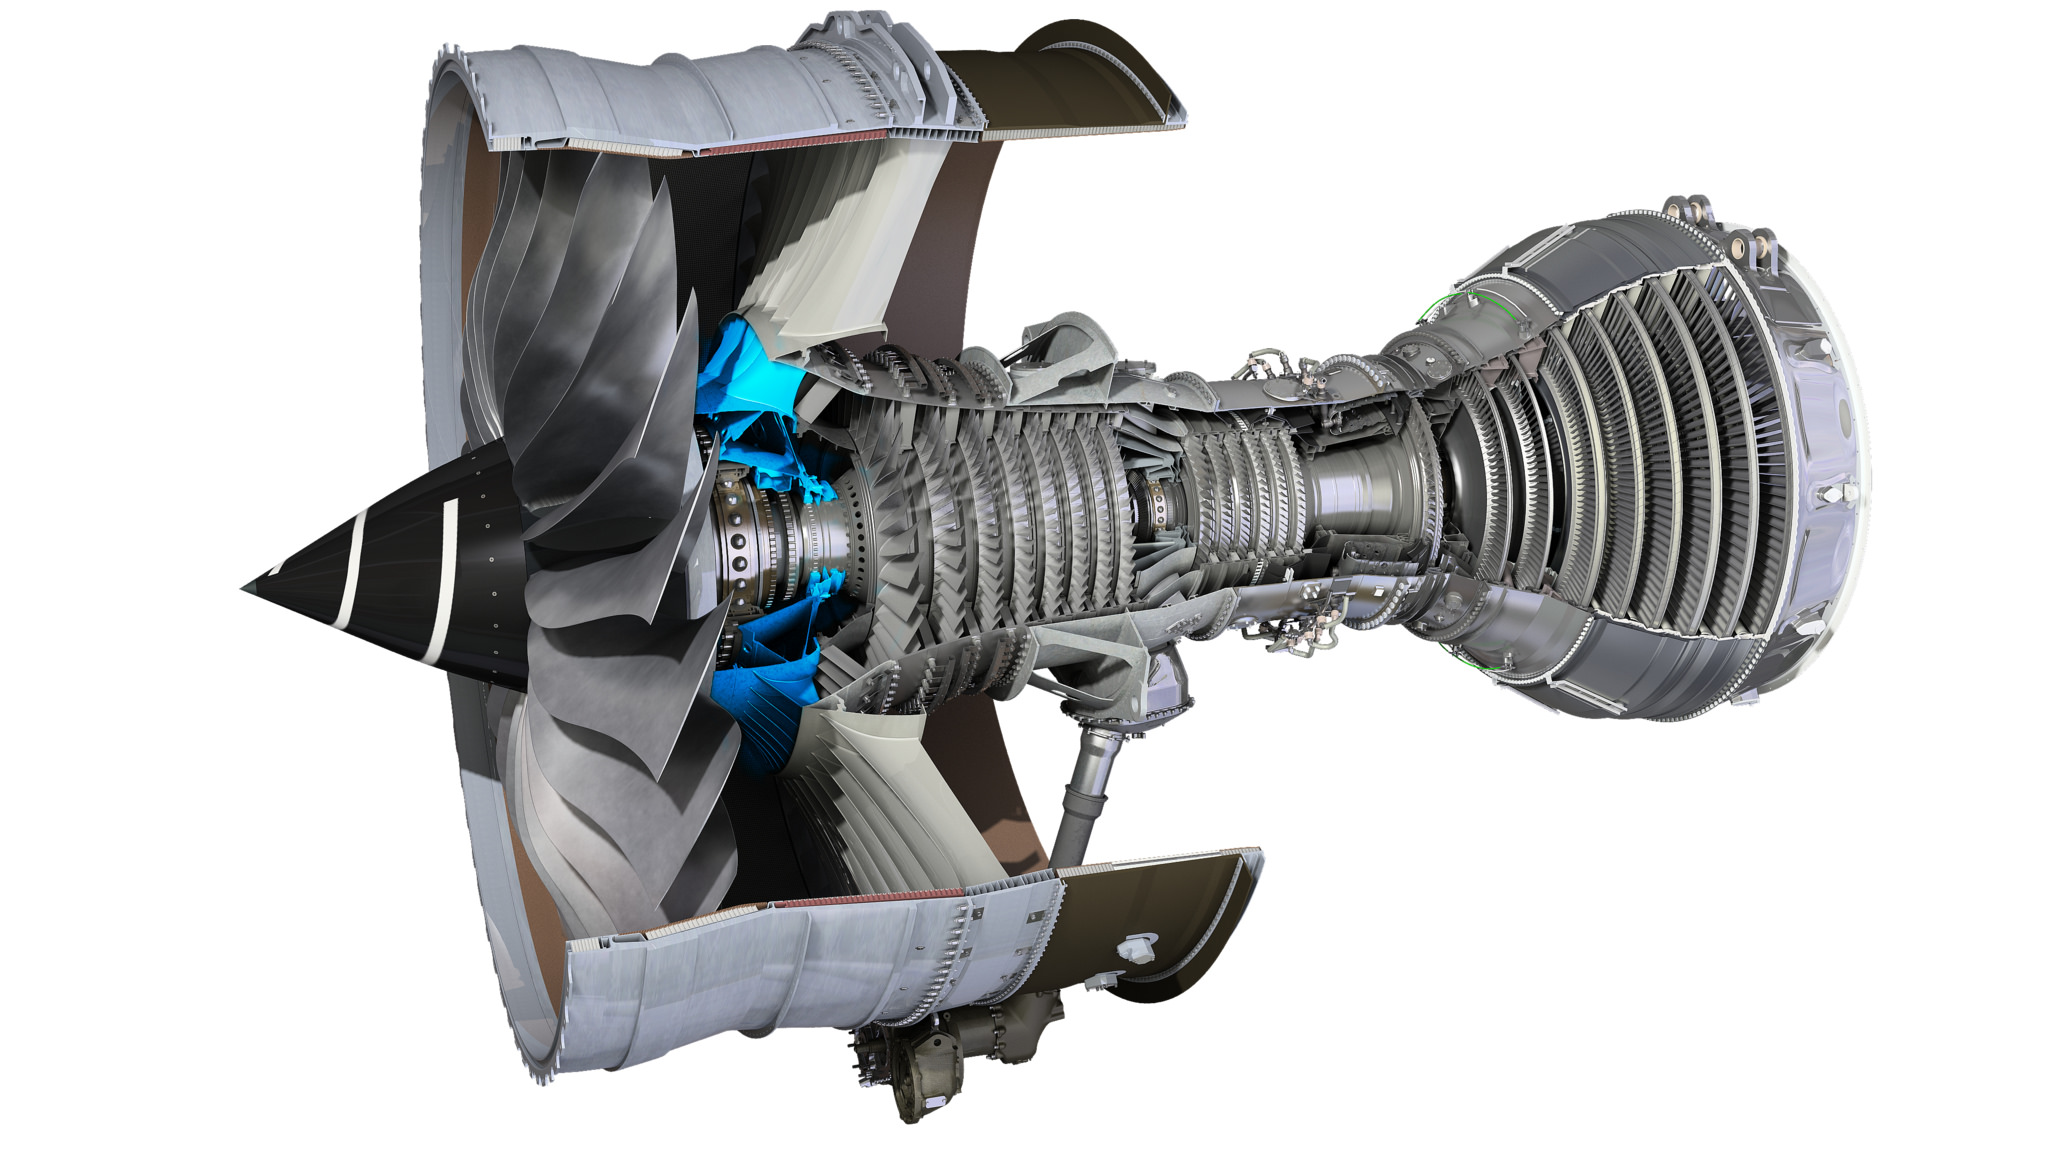 Trent XWB cut away showing position of the front bearing housing (in blue) which Rolls-Royce has produced using 3D printing.